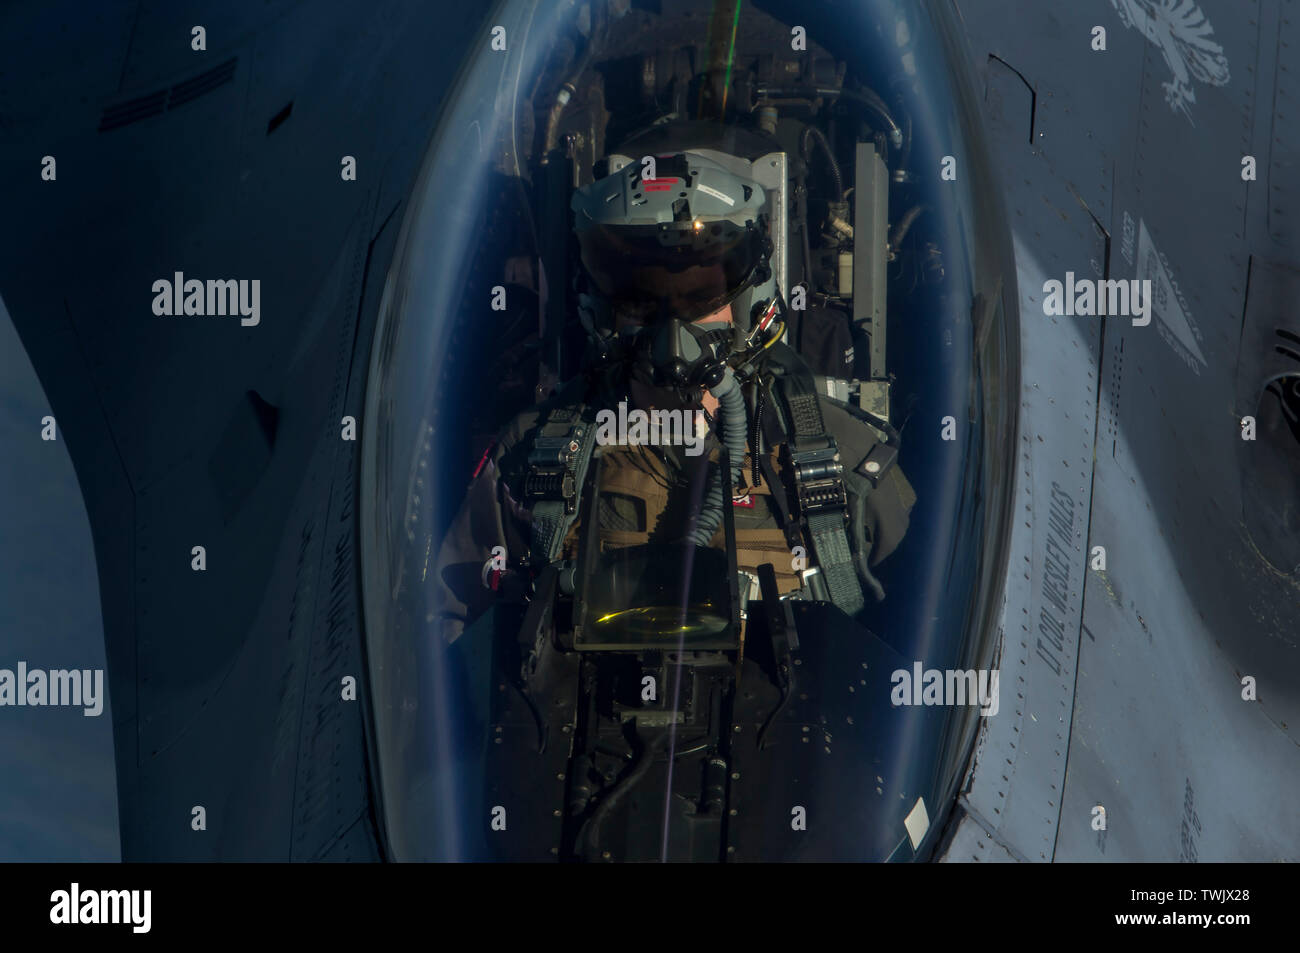 A U.S. Air Force F-16 Fighting Falcon pilot from the 13th Fighter Squadron, Misawa Air Base, Japan, receives fuel from a KC-135 Stratotanker during RED FLAG-Alaska 19-2 near Eielson Air Force Base, Alaska, June 18, 2019. RF-A is an annual U.S. Pacific Air Forces field training exercise for U.S. and international partners to enhance combat readiness of participating forces. The KC-135 is assigned to the 909th Air Refueling Squadron, Kadena Air Base, Japan. RF-A is an annual U.S. Pacific Air Forces field training exercise for U.S. and international partners to enhance combat readiness of partici - Stock Image